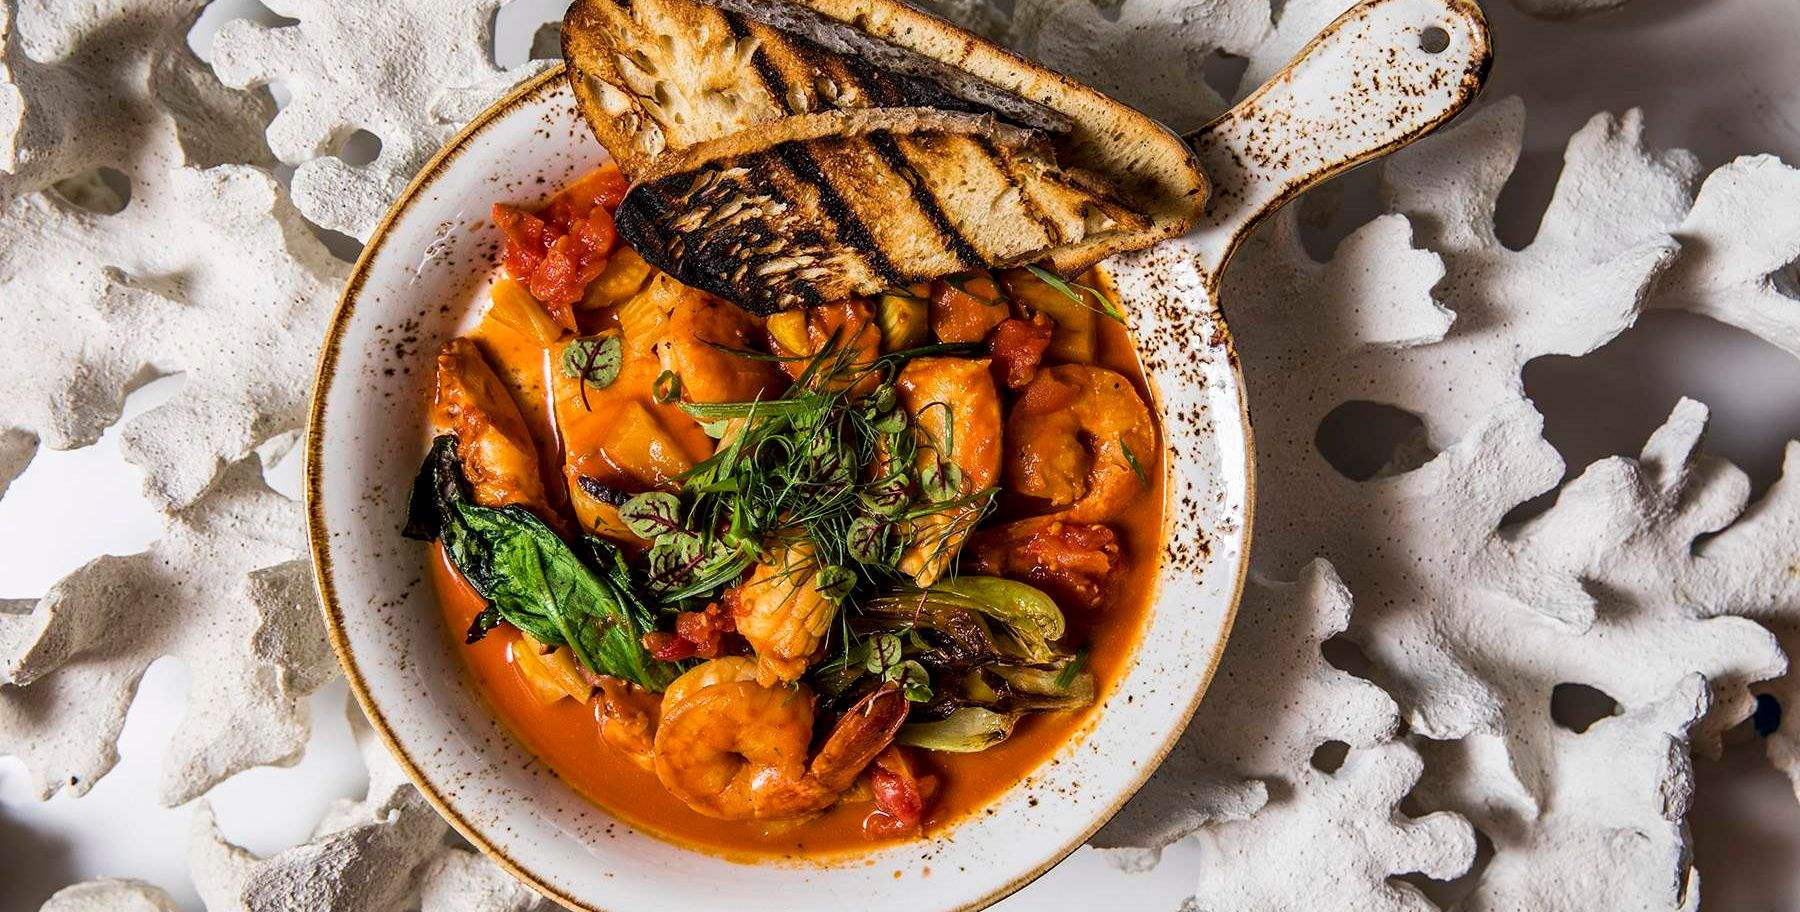 A vibrant menu rooted in local flavors